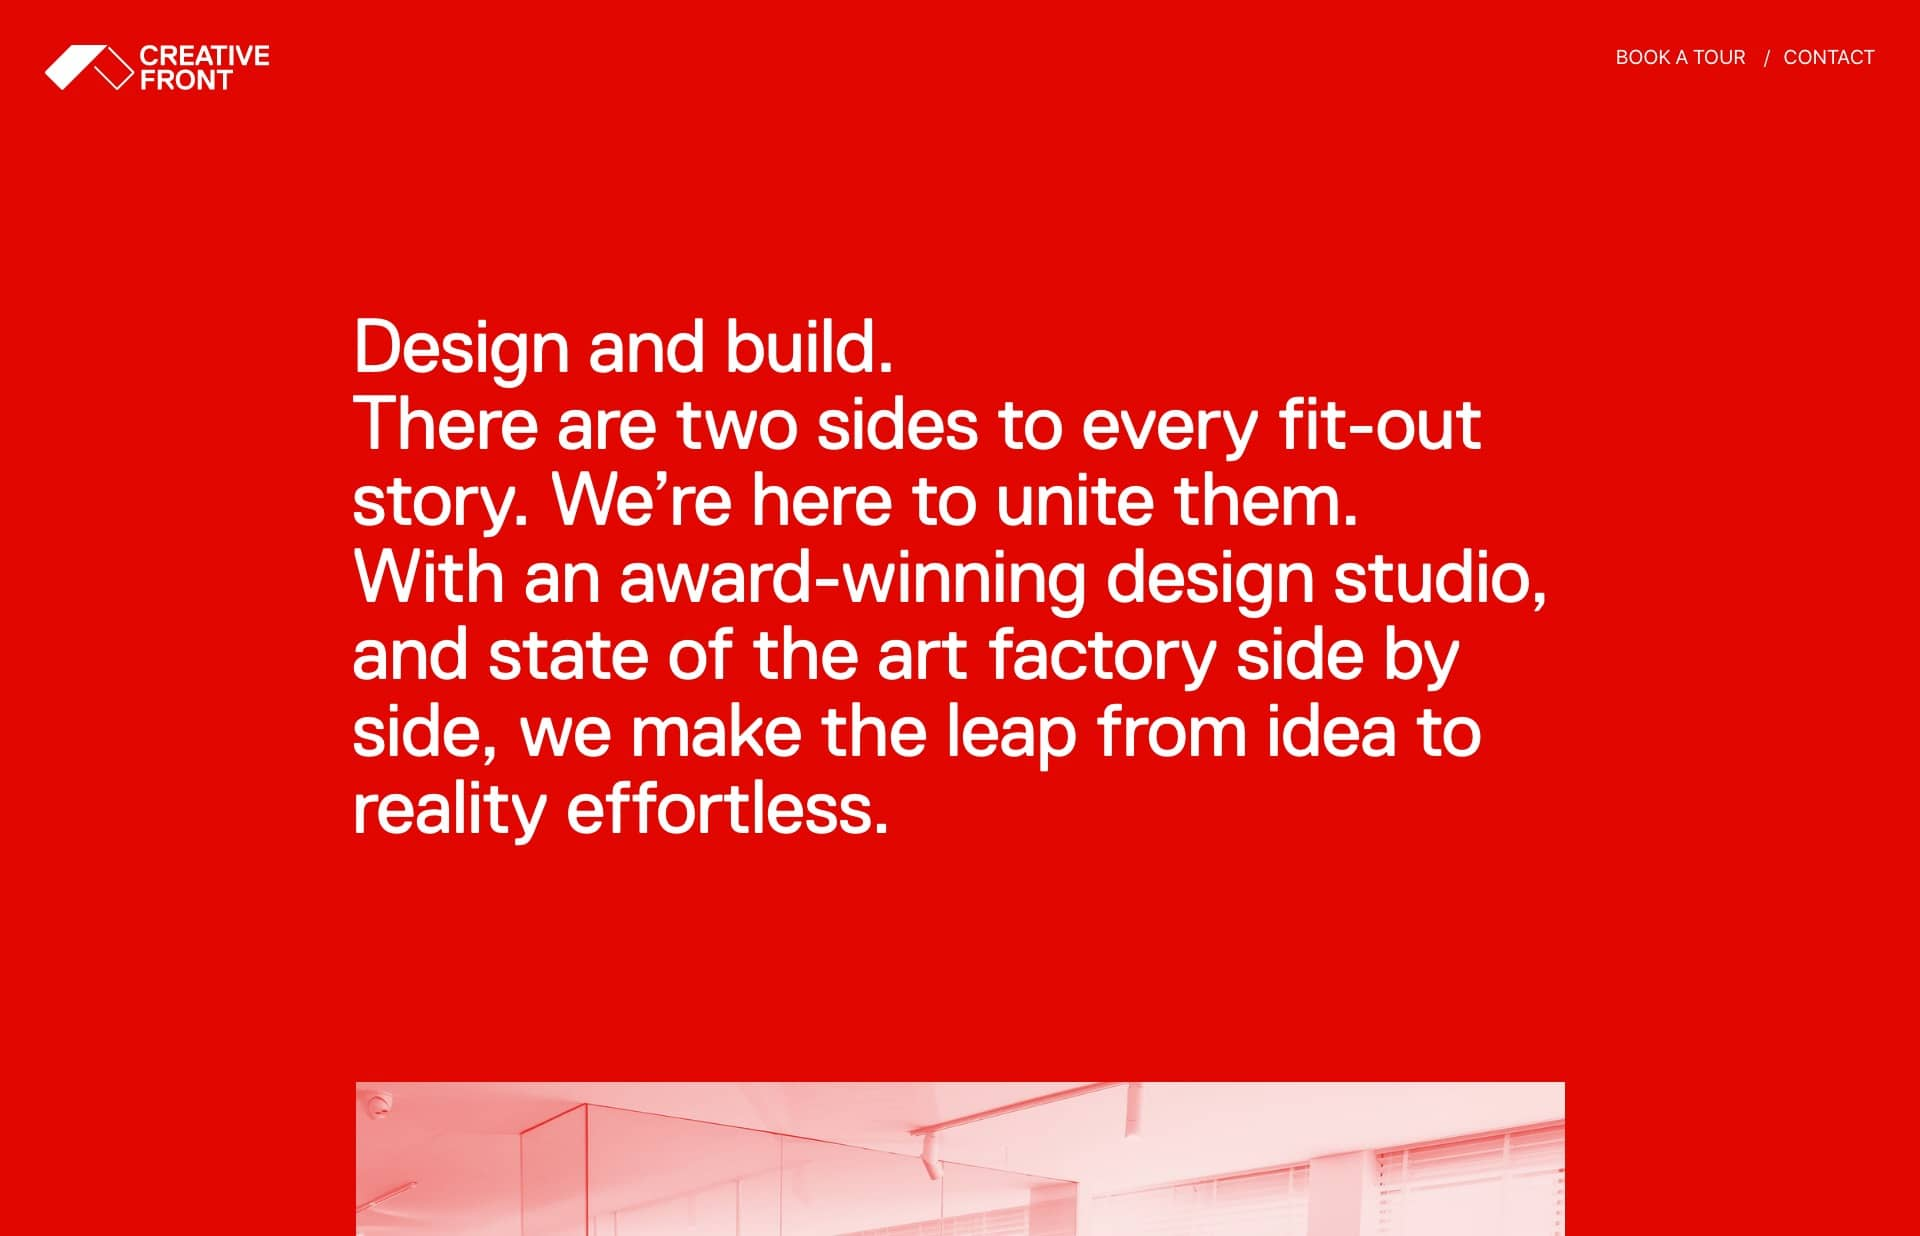 Screenshot of the website Creative Front, featured on The Gallery, a curated collection of minimal websites